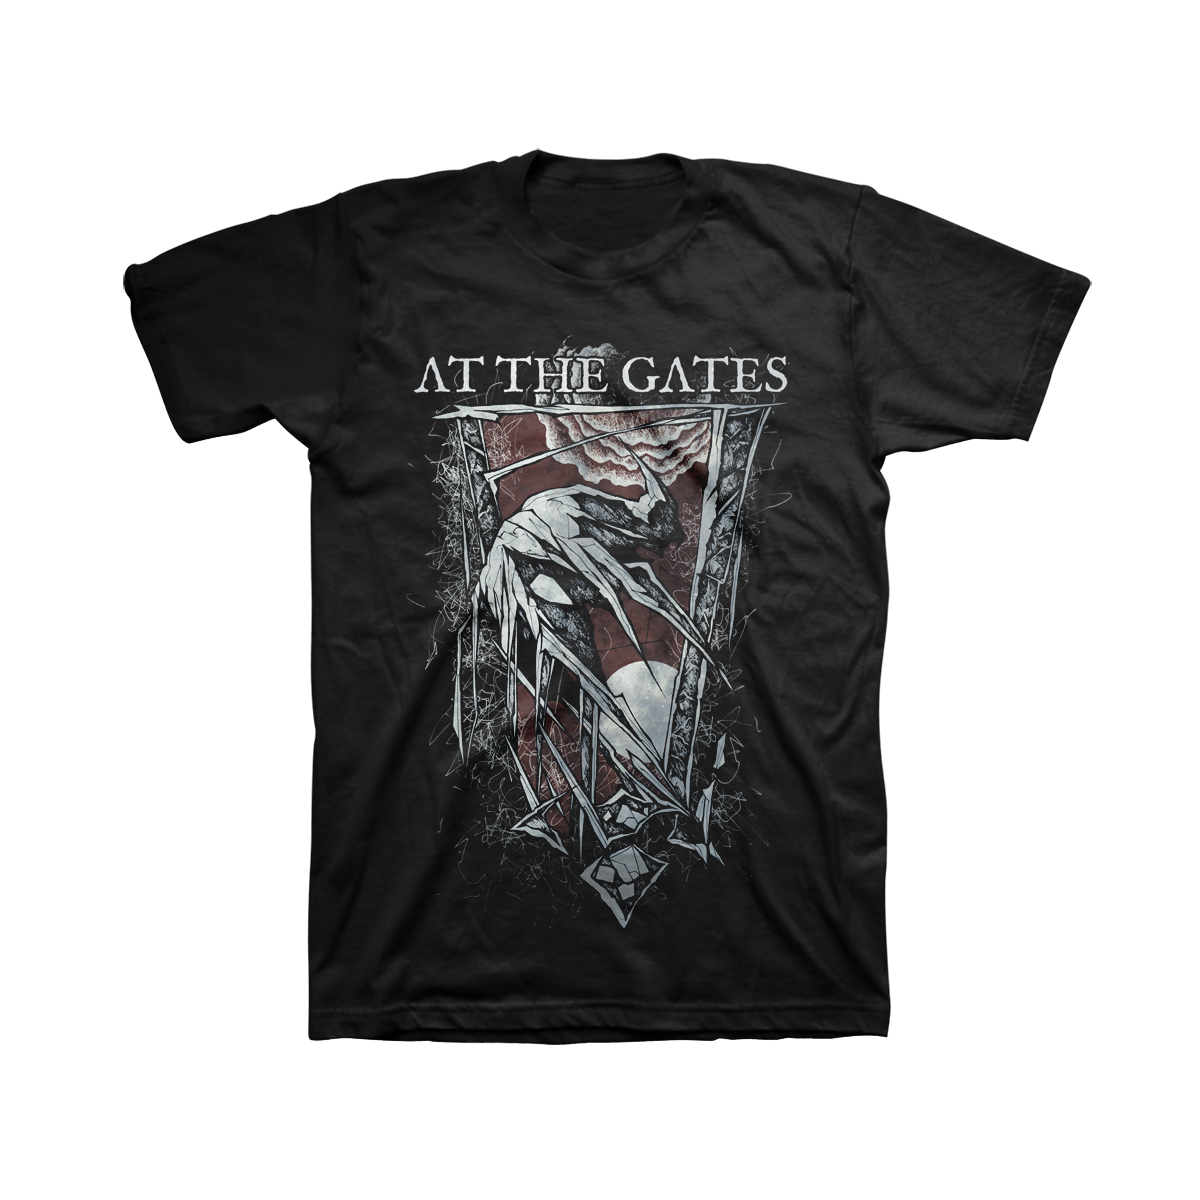 At The Gates - Nightmare Black T-Shirt